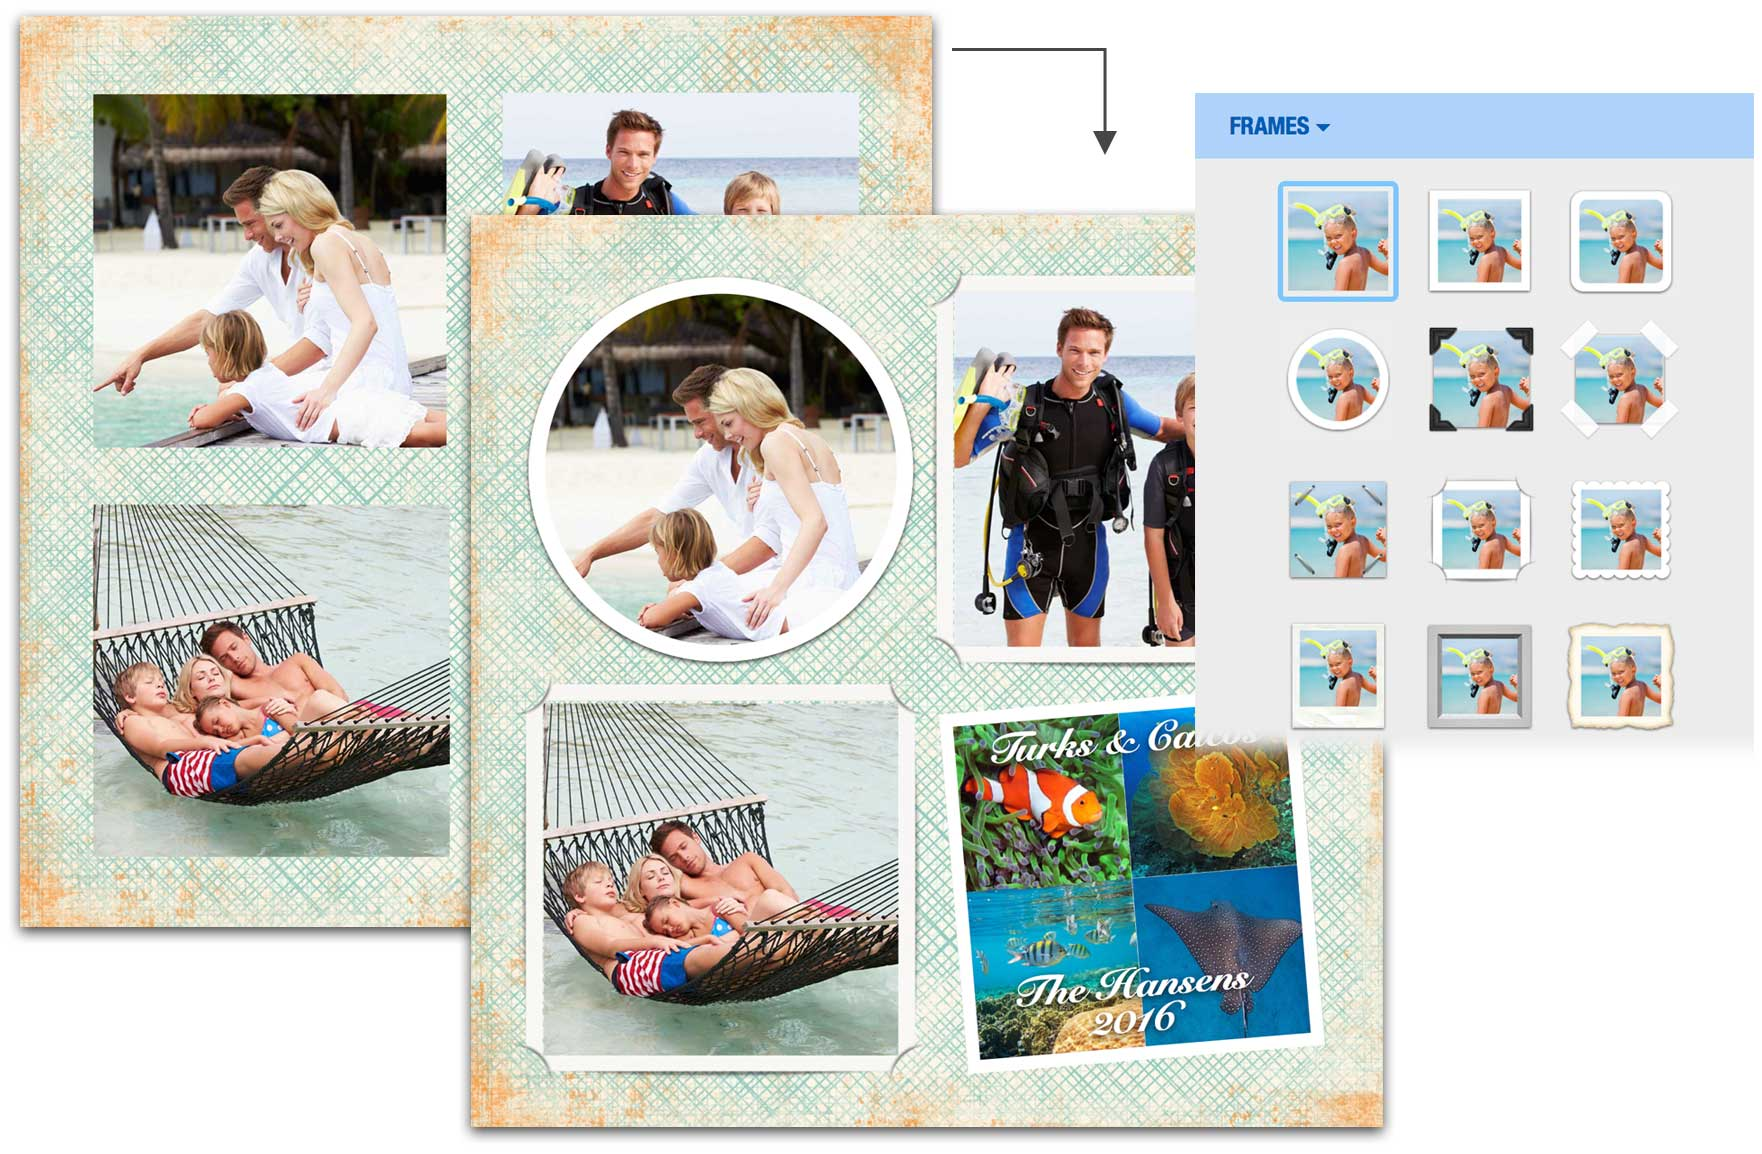 One-click frame examples.